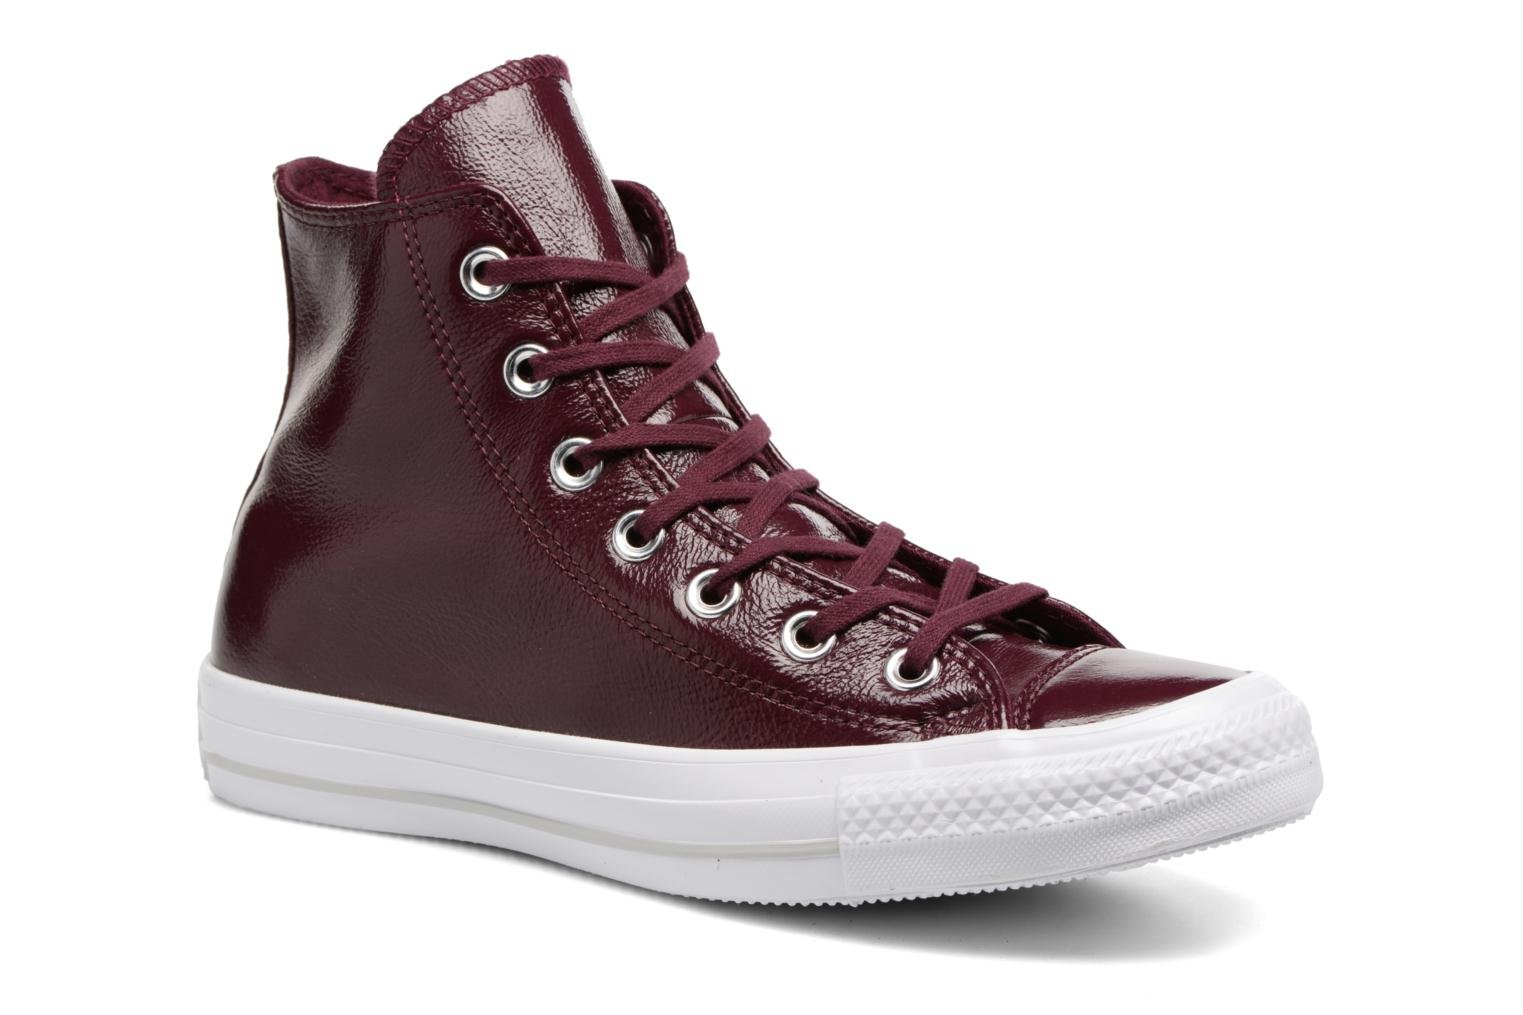 Converse Chuck Taylor All Star Crinkled Patent Leather Hi (Bordeaux) - Baskets chez Sarenza (310700)